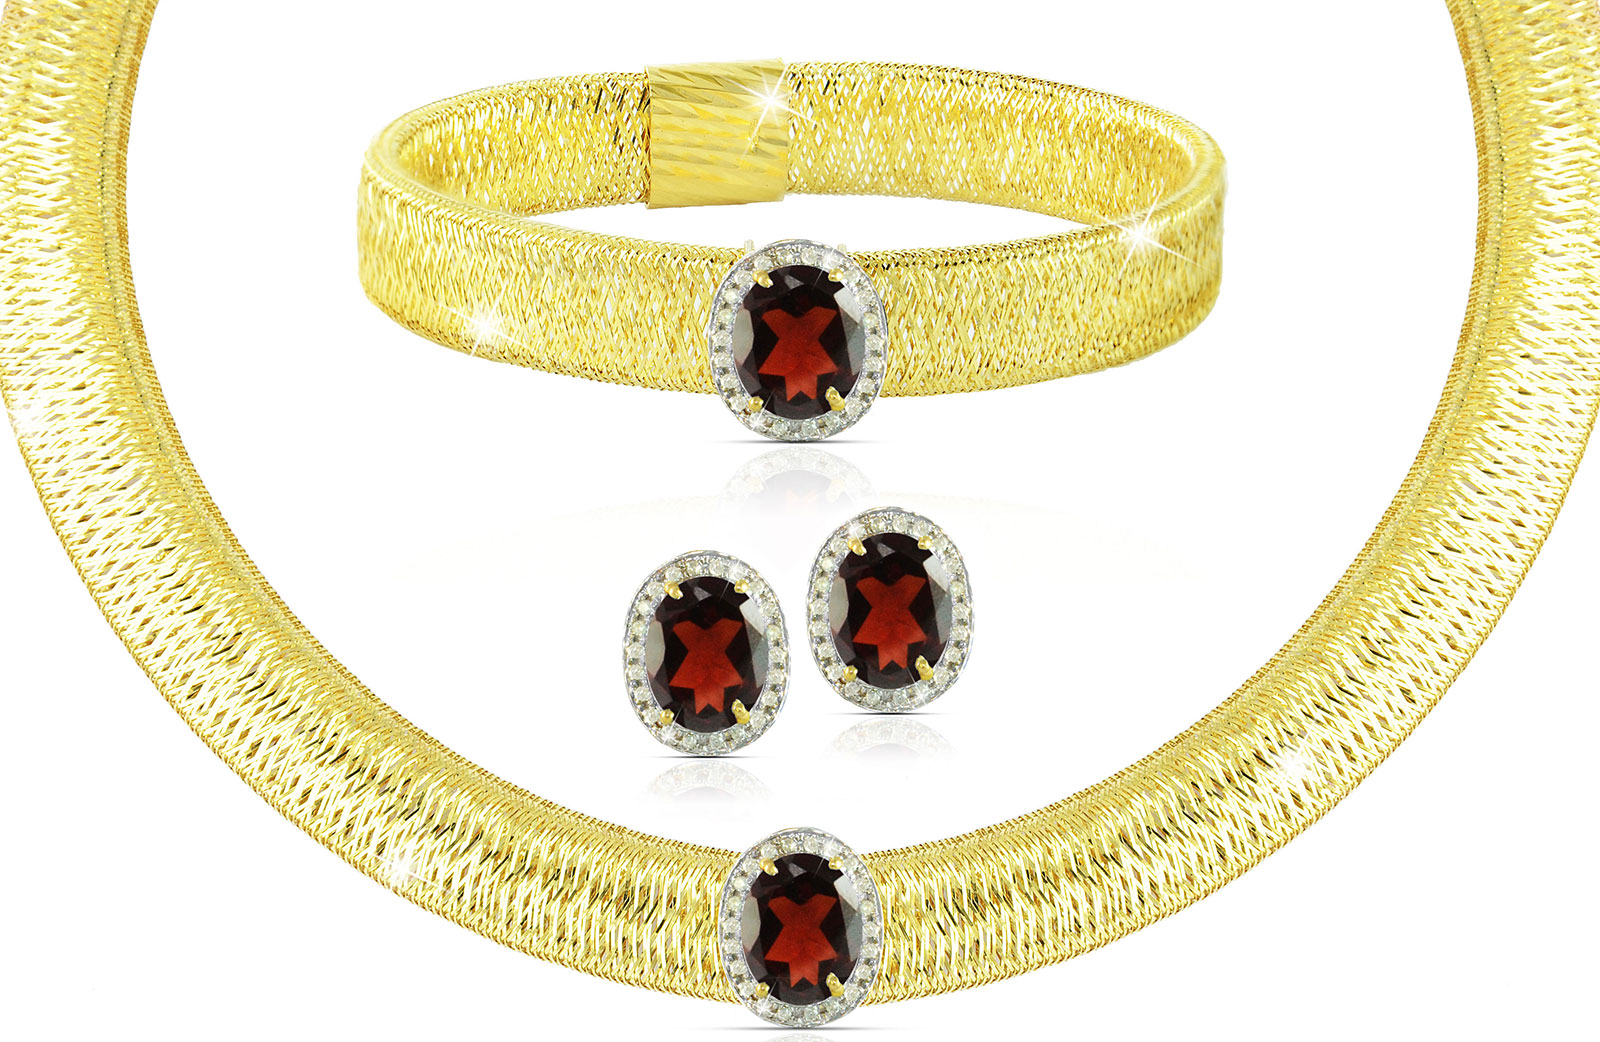 Vera Perla 18K  Gold 0.52Cts Genuine Diamonds and 10mm Genuine Garnets Necklace, Bracelet and earrings Set